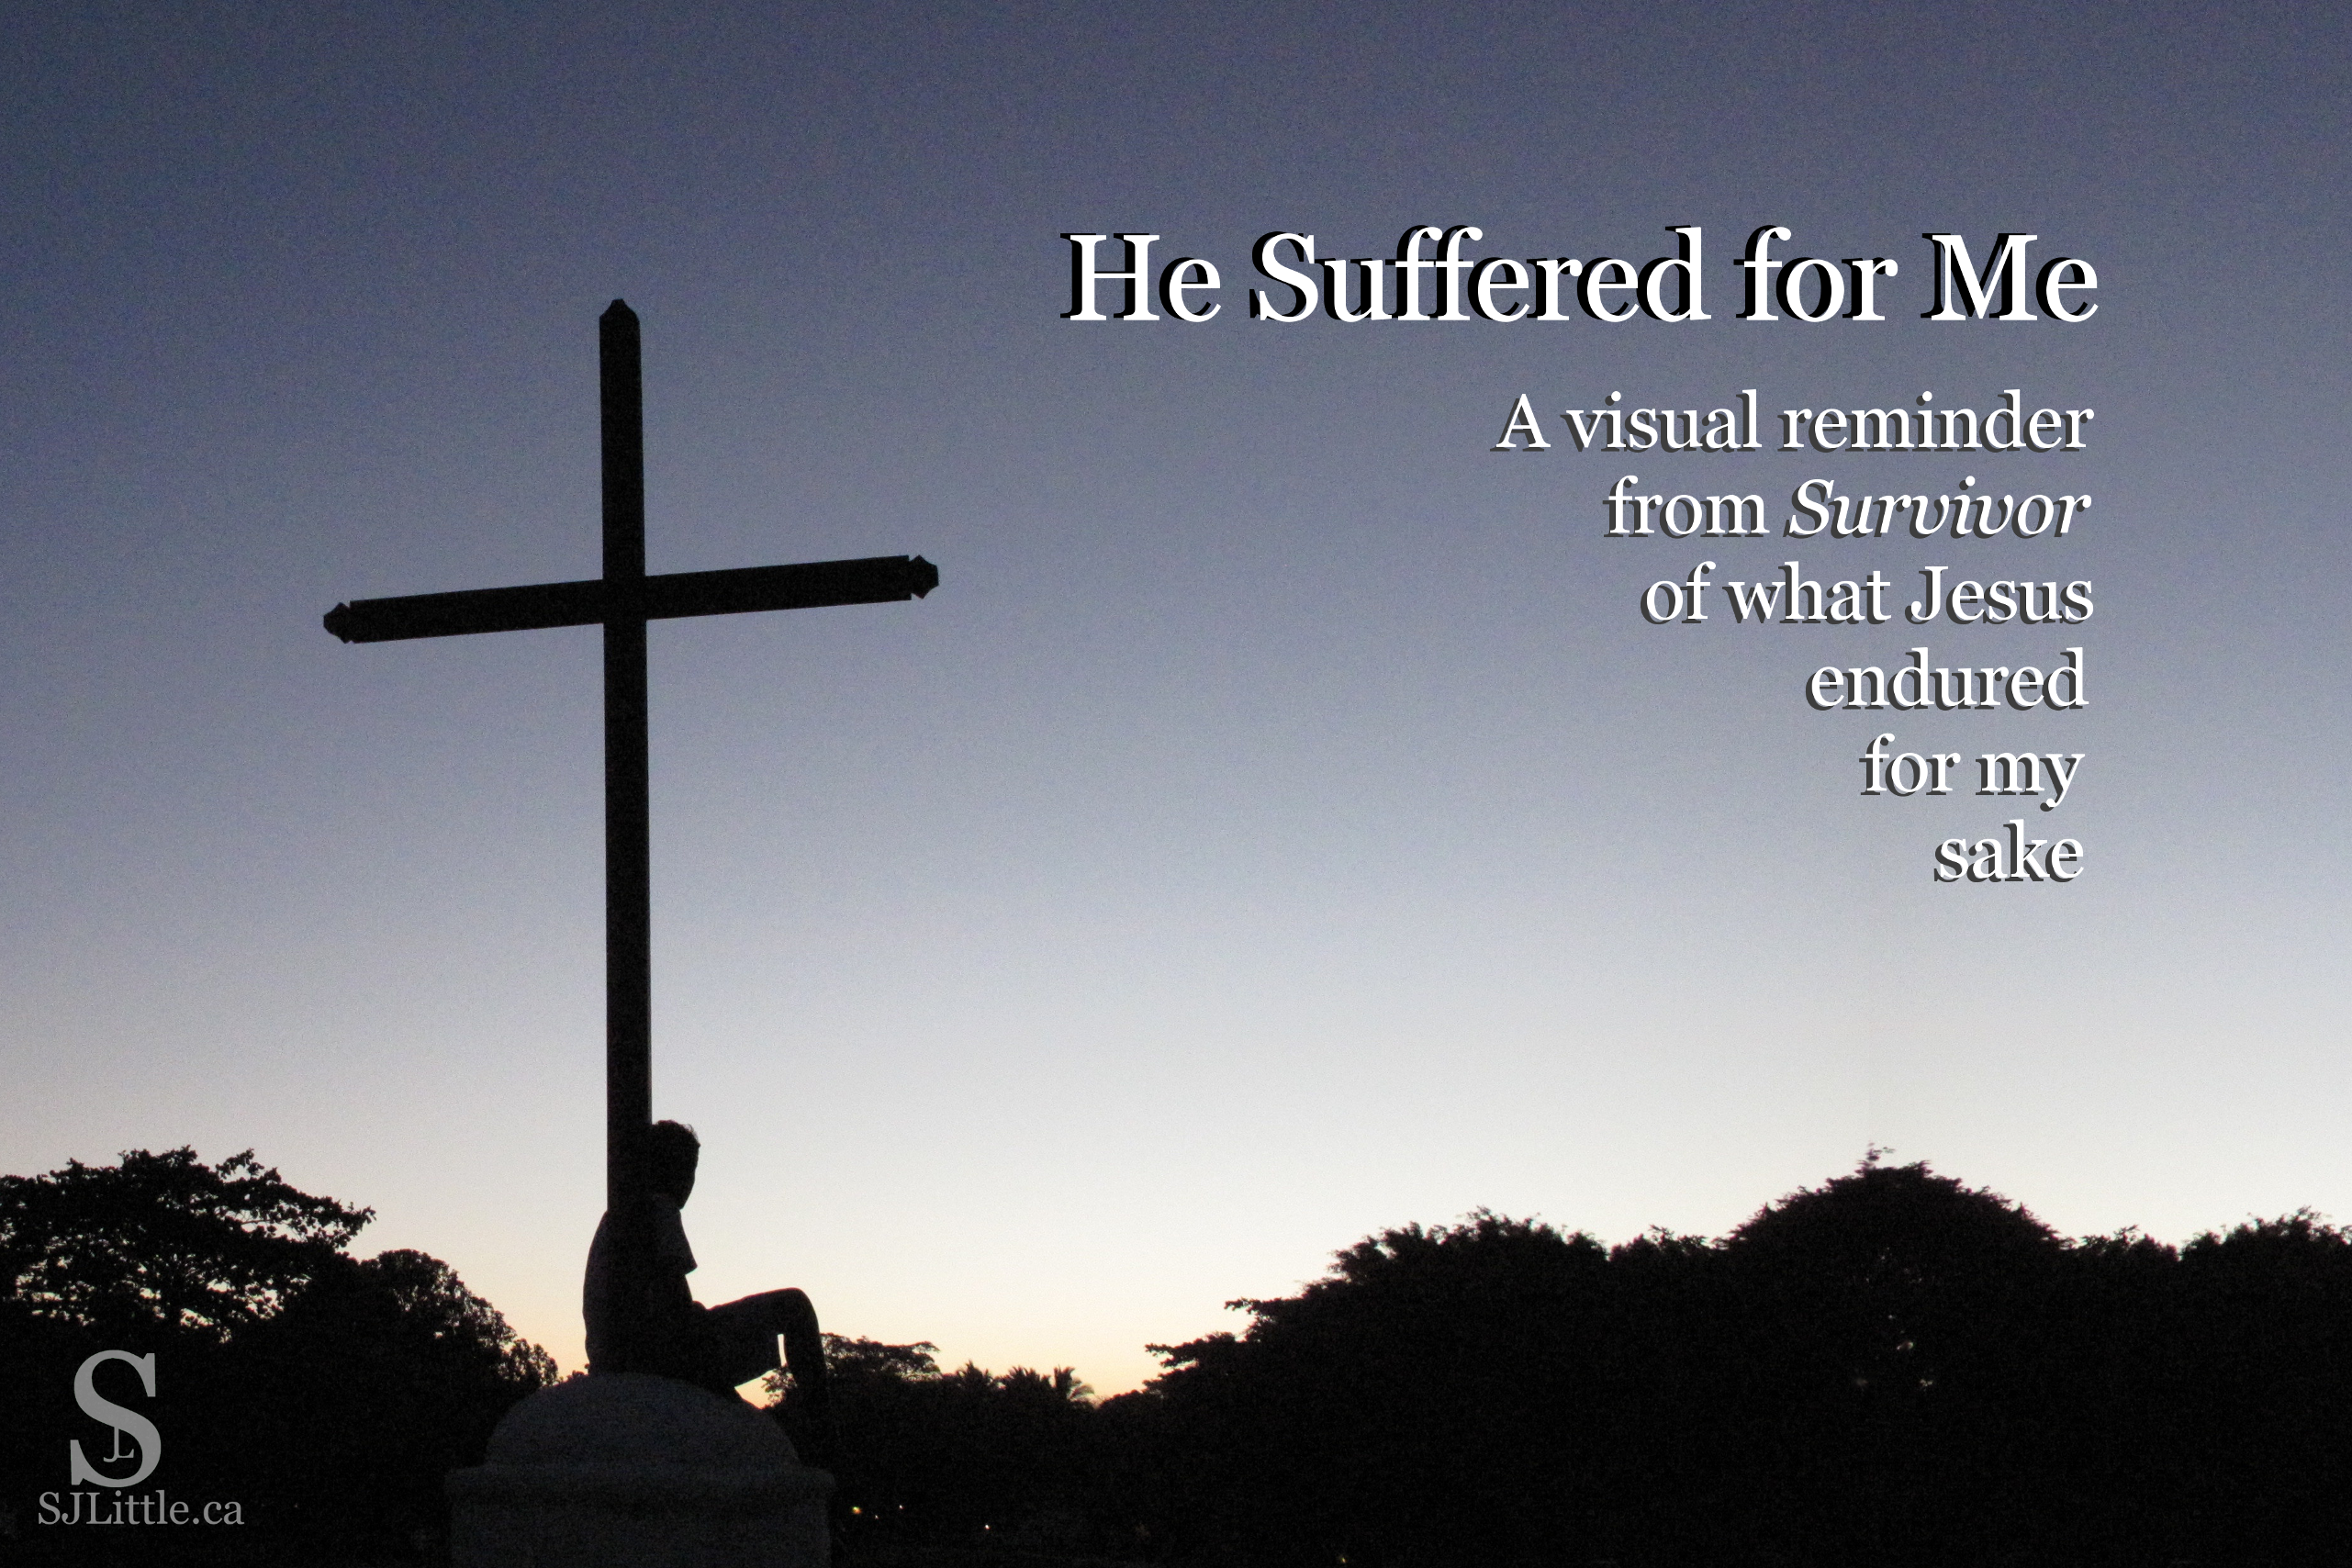 He Suffered for Me written on shadow of a cross